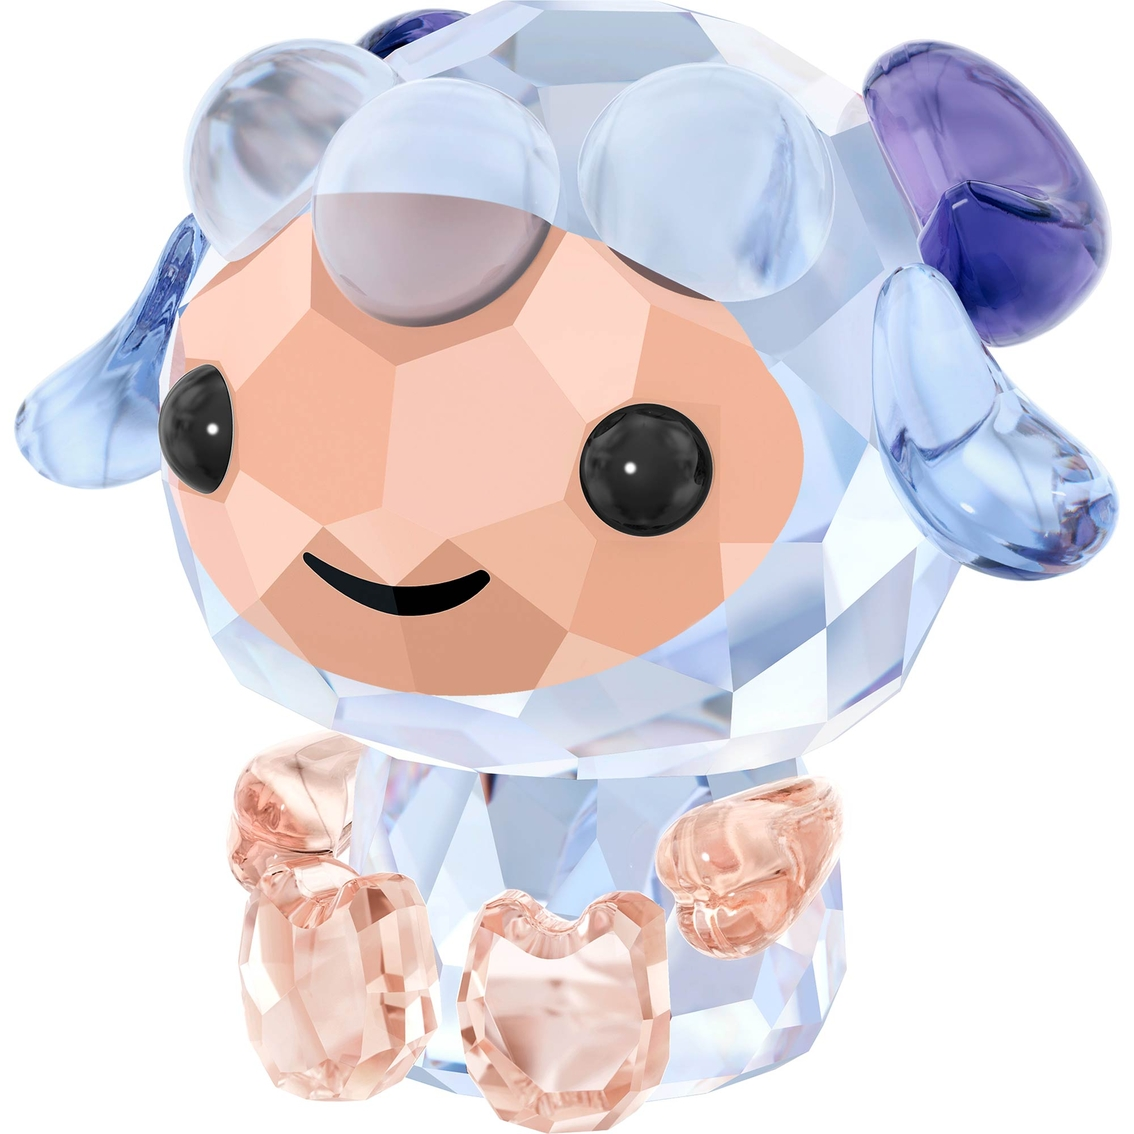 becf44bab Swarovski Chinese Zodiac Sincere Sheep | Collectible Figurines ...